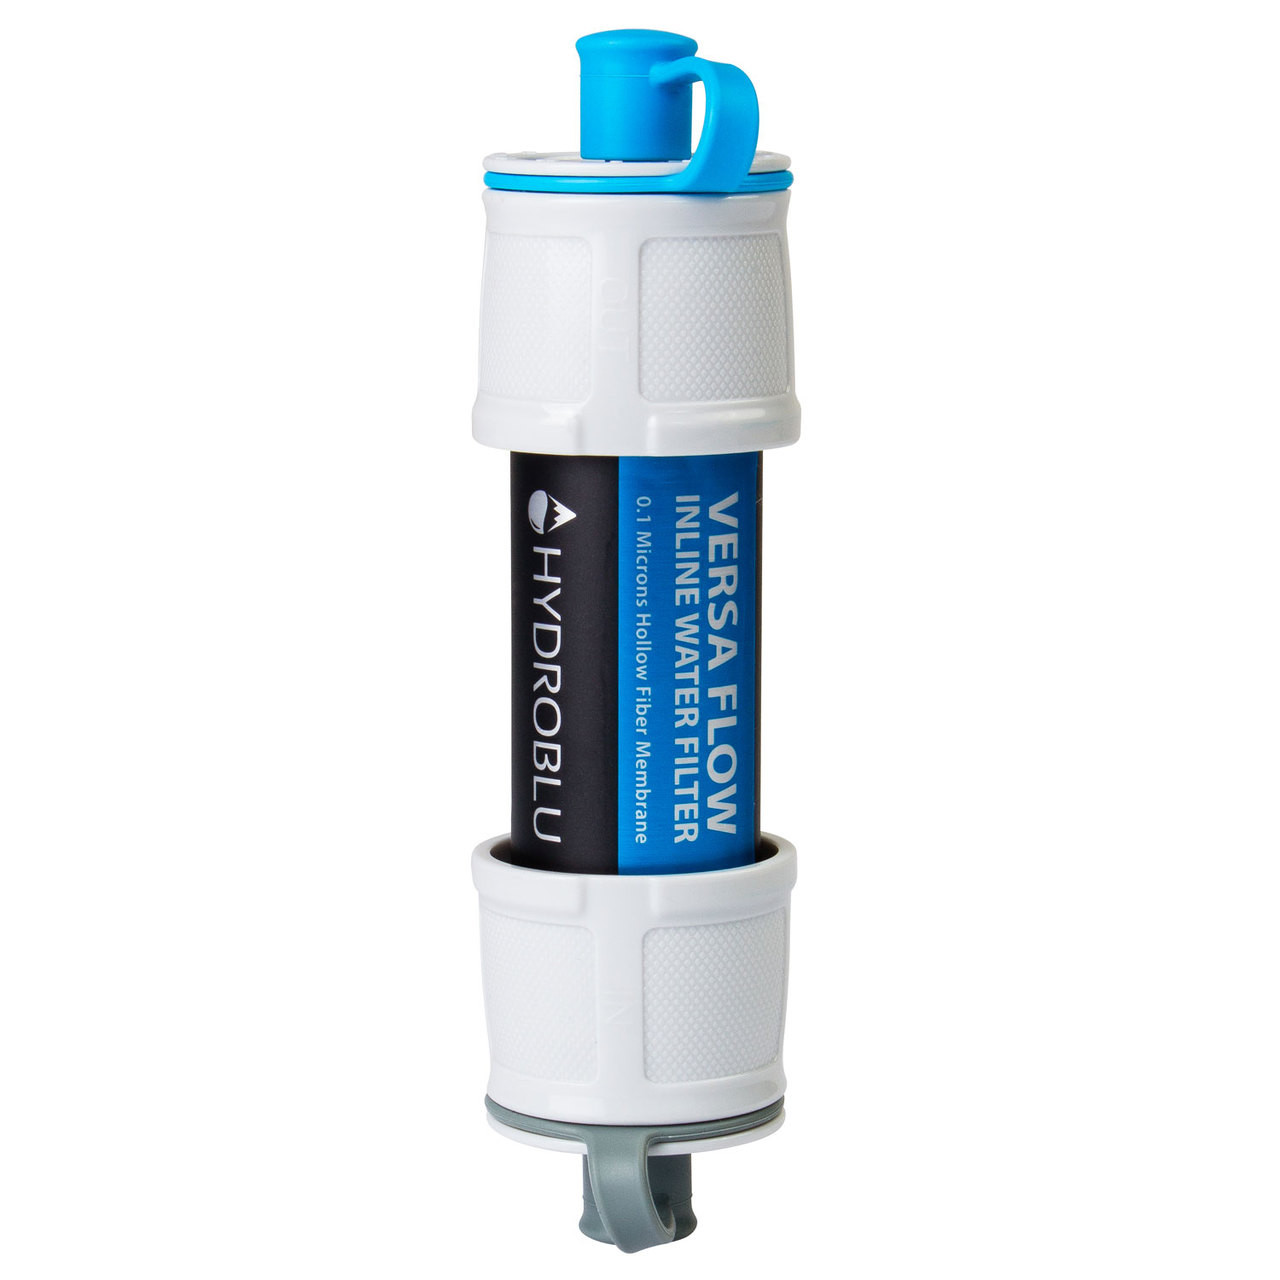 Hollow Fiber Inline or Straw Filter for Survivor and Emergency Filtration by HydroBlu Versa Flow Light-Weight Water Filter System